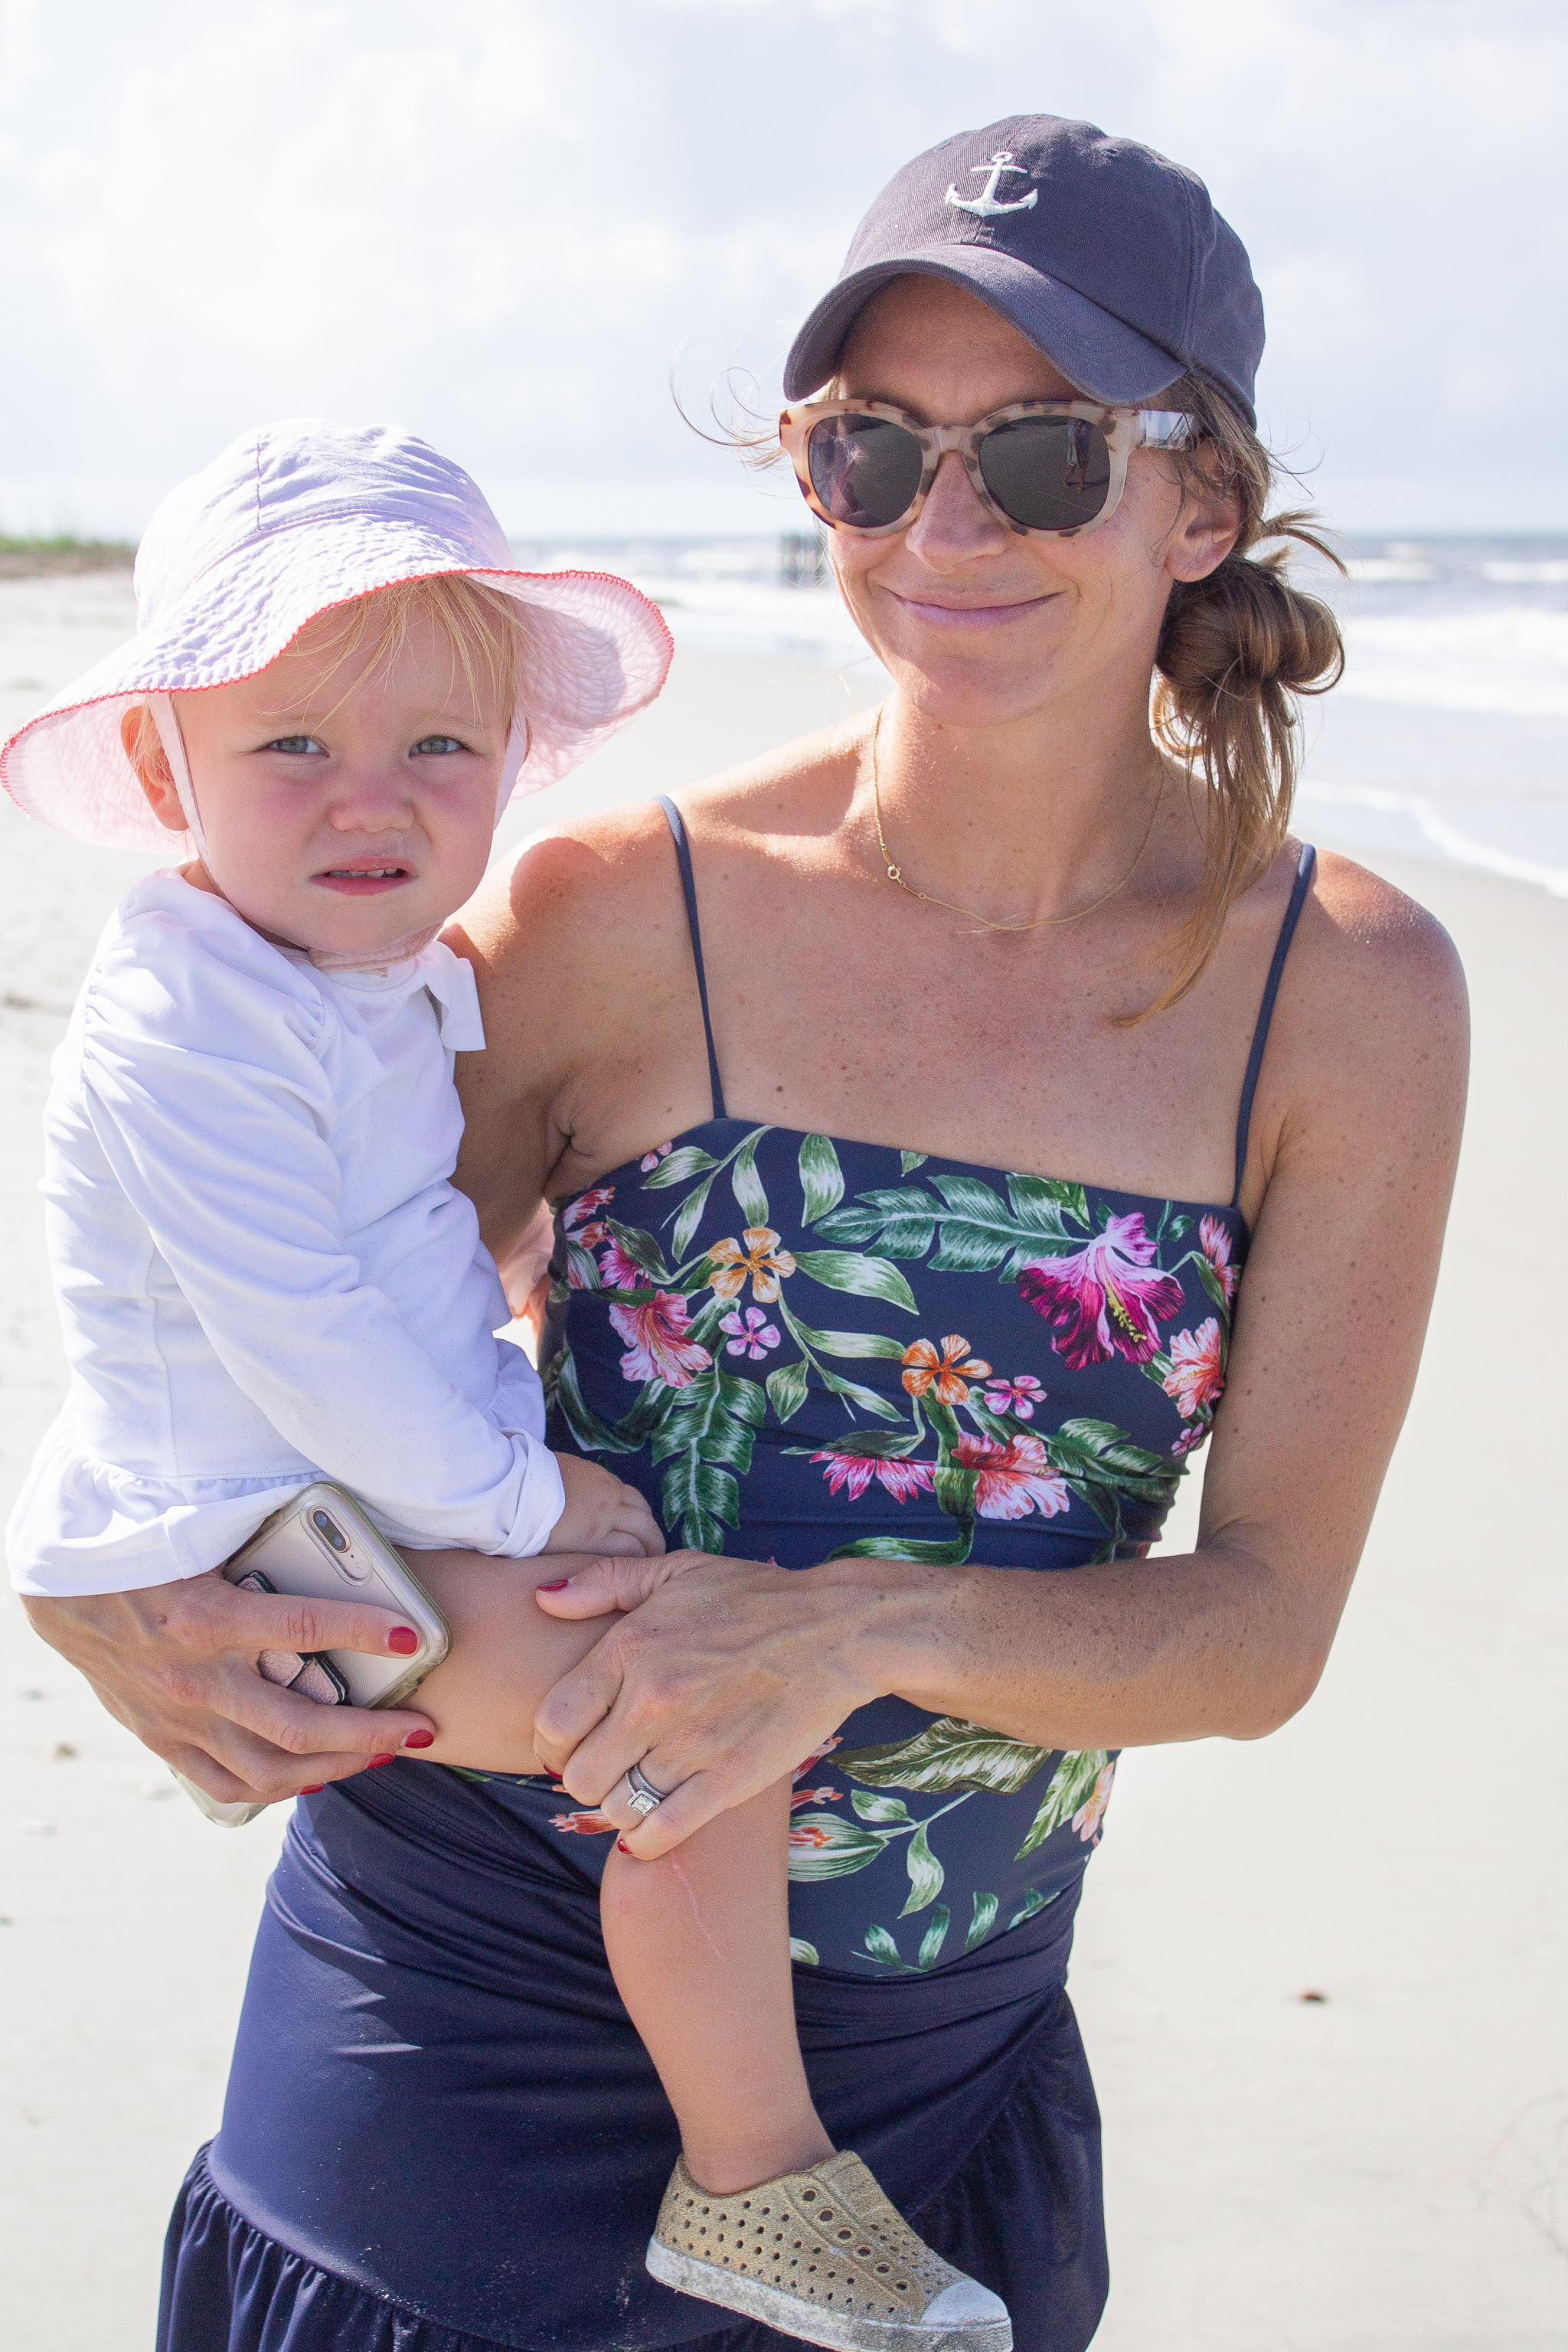 fripp island - south carolina - boating - lowcountry - shell island - toddler outfit inspiration - toddler boy style - toddler girl style - hm swimsuit - 14 weeks pregnant - jcrew factory wrap skirt - navy anchor baseball cap